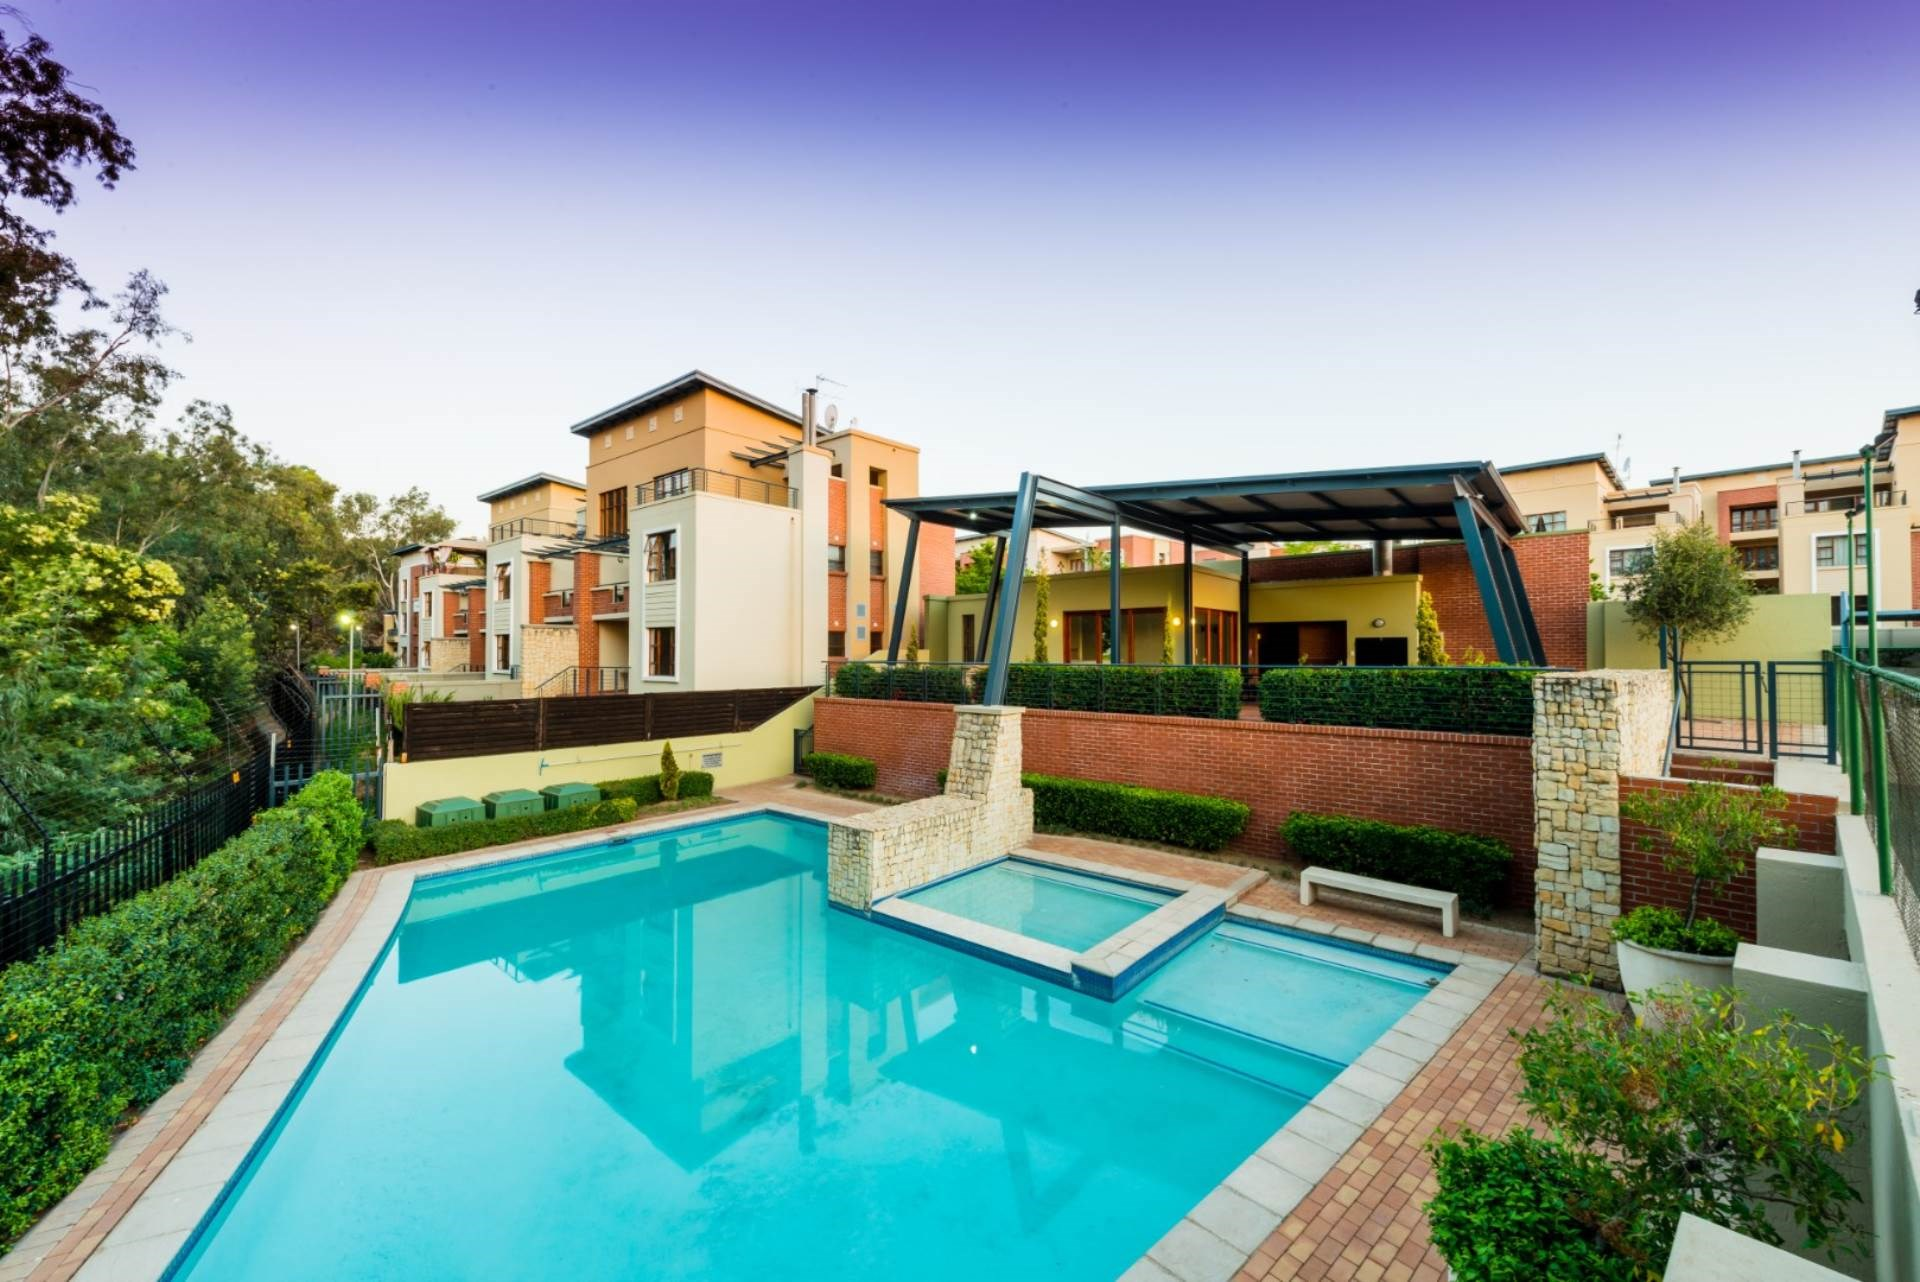 2 Bedroom Townhouse for Sale in Douglasdale